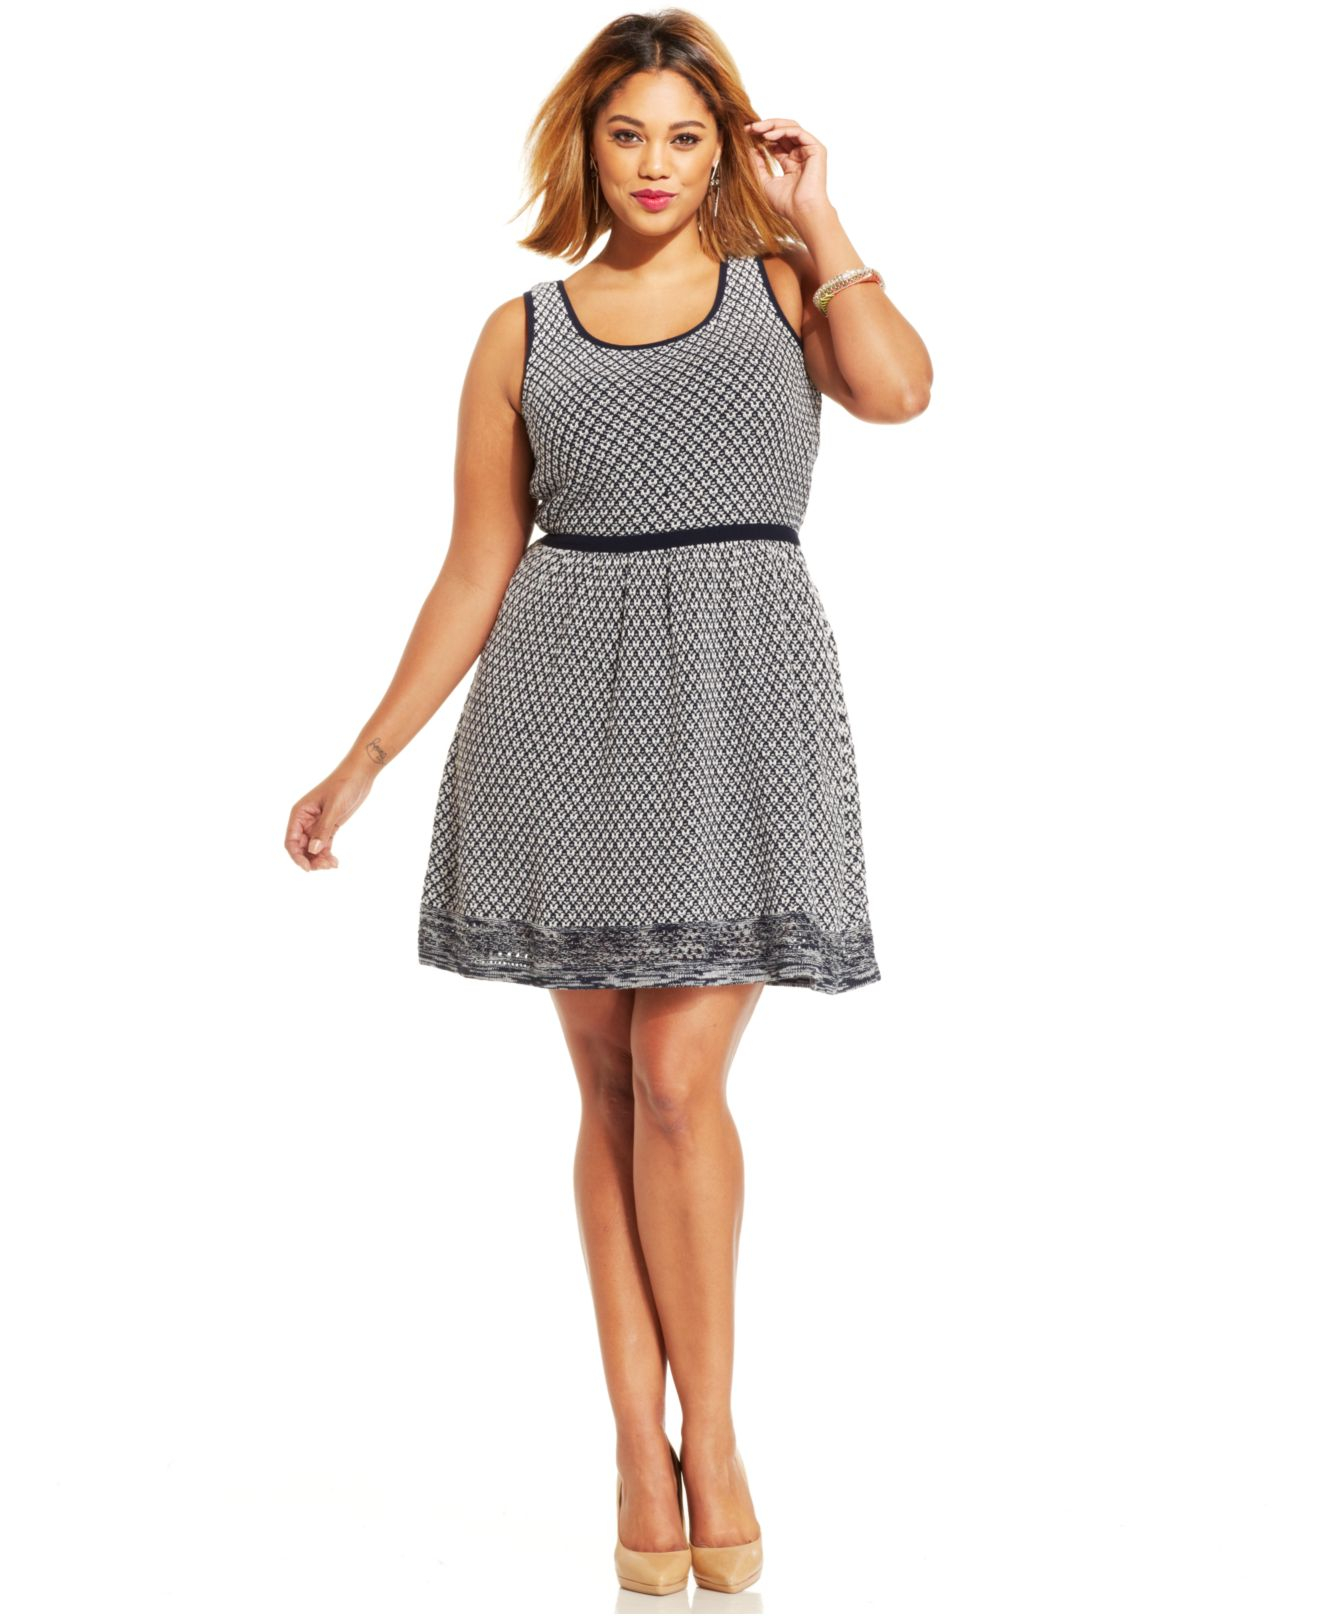 Jessica Simpson Plus Size Dresses